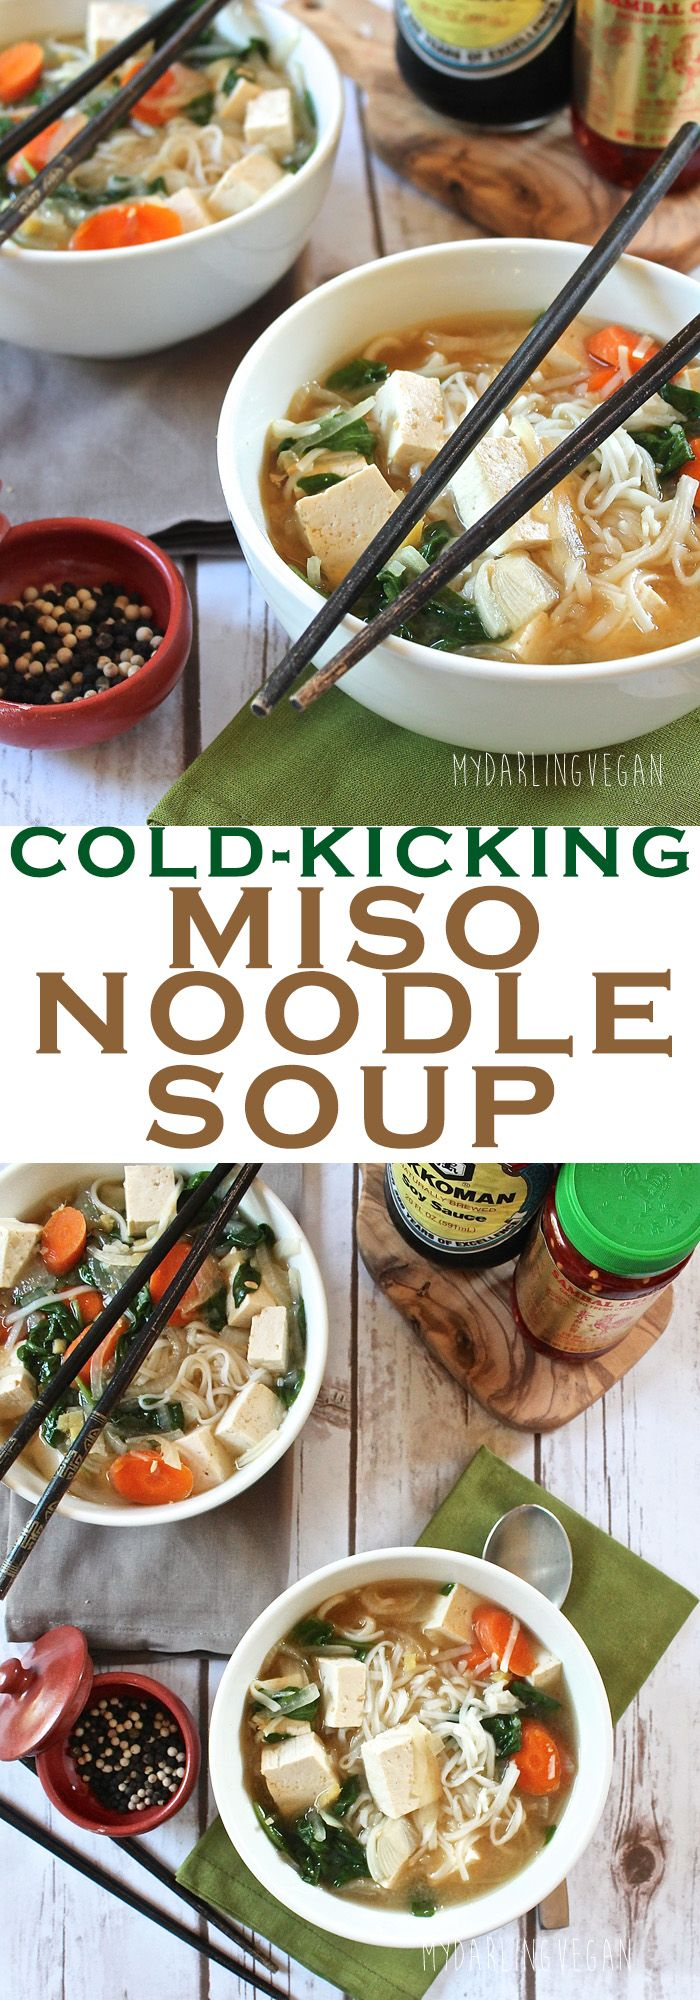 Kick this winter's cold with a warm bowl of hearty Vegan Miso Noodle Soup. Click the photo for this simple recipe!